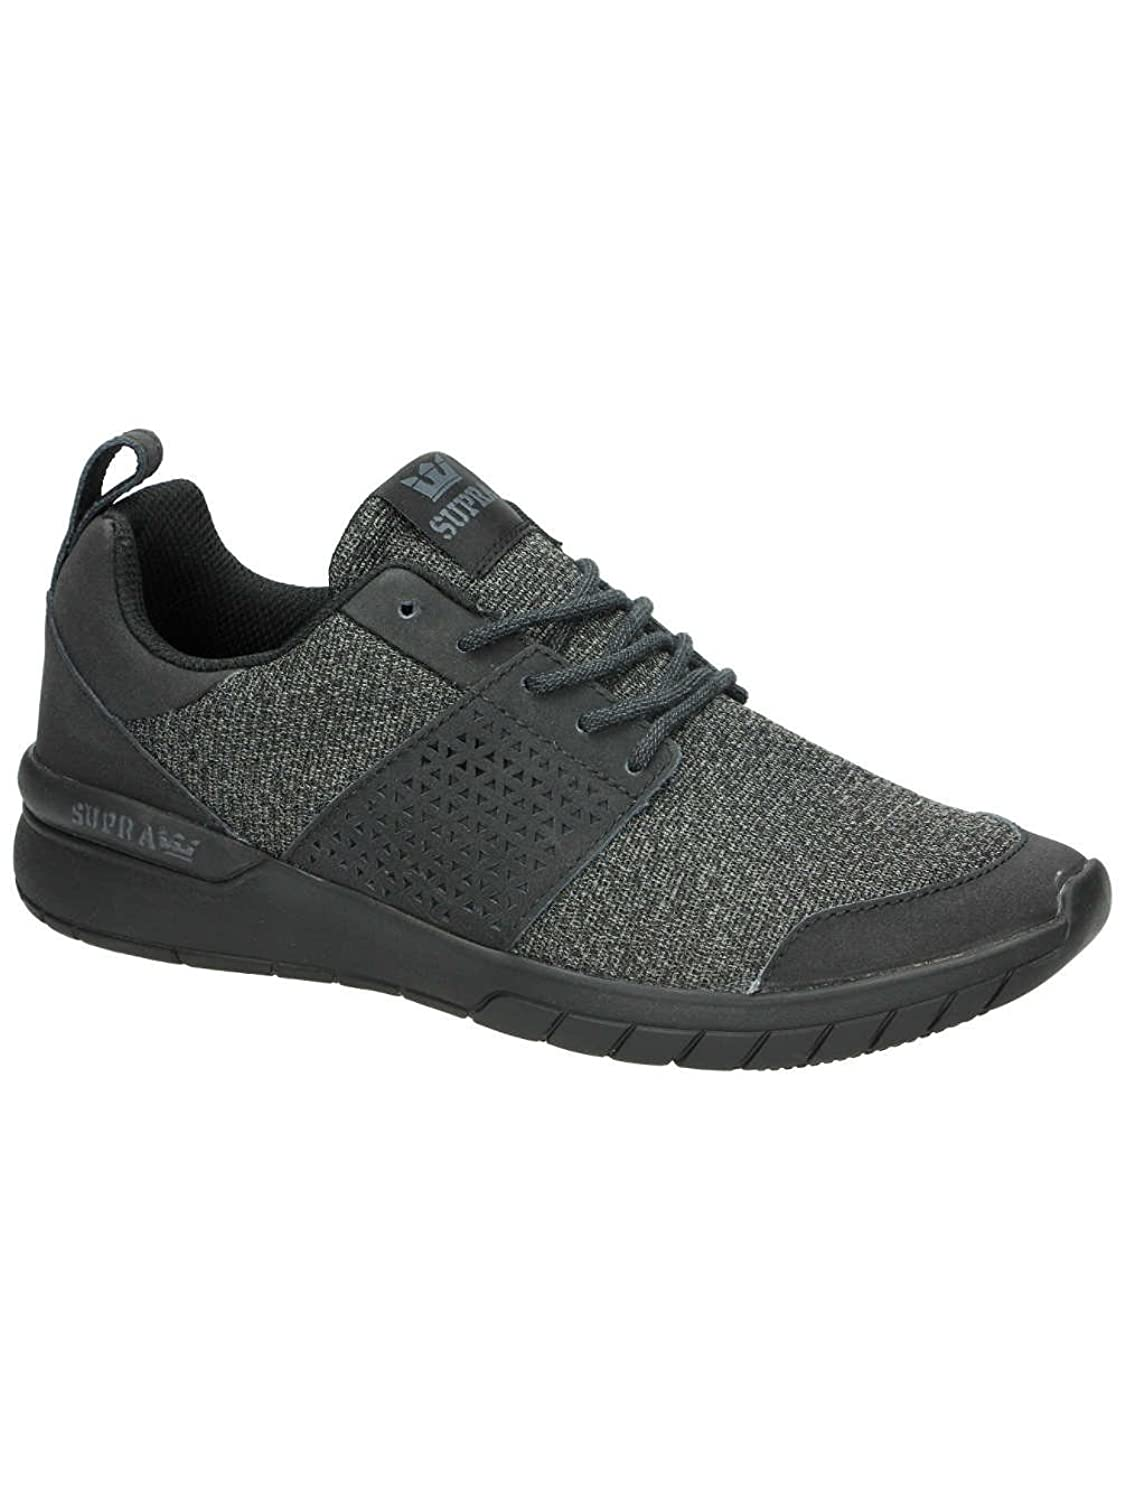 Supra Men's Scissor Black/Black Sneaker Men's 8, Women's 9.5 D (M)